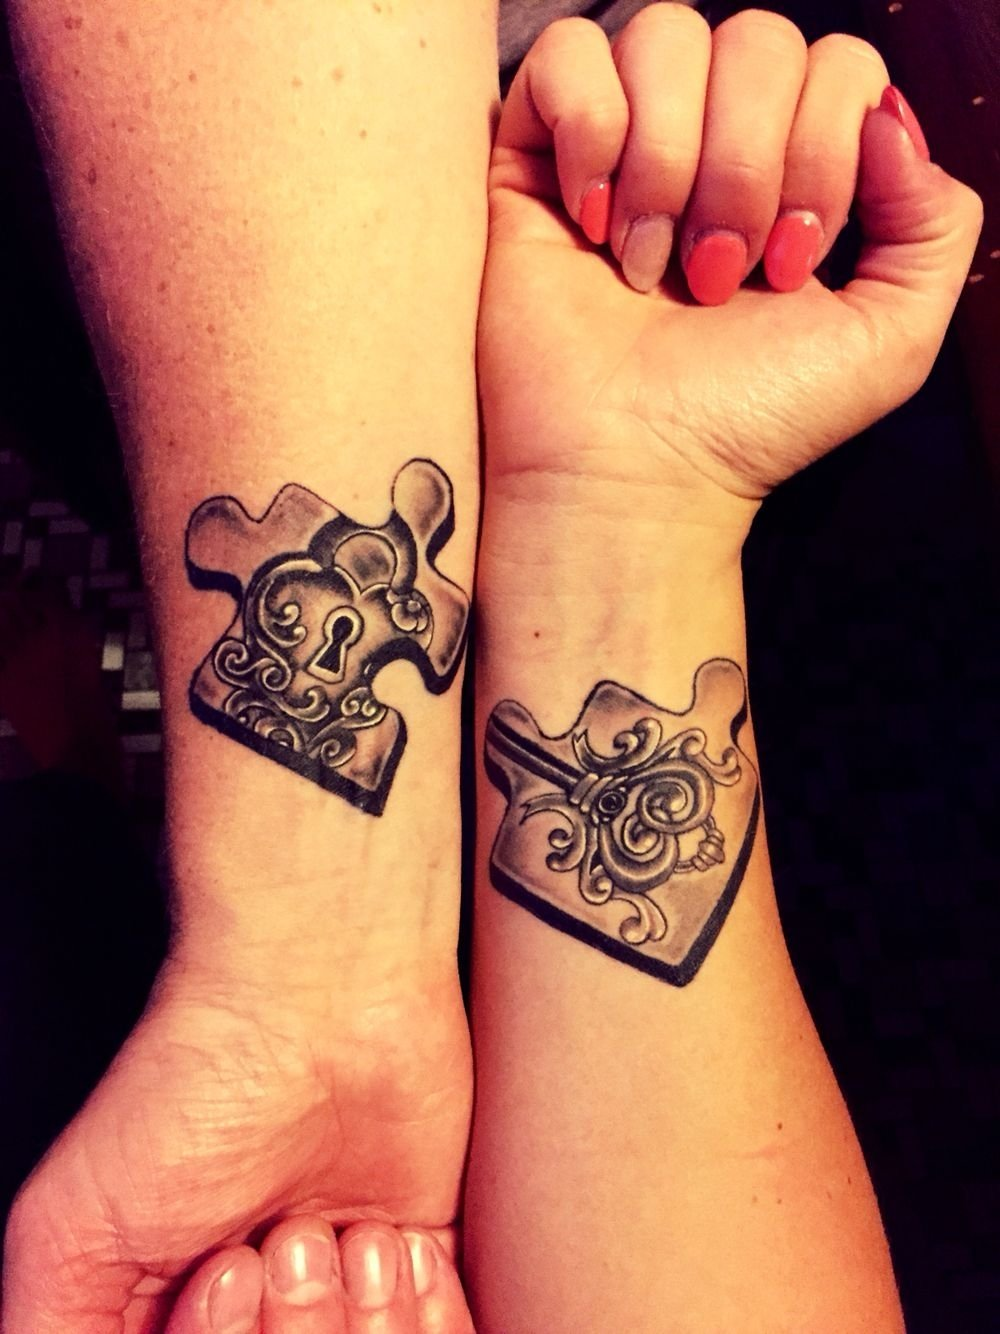 30 matching tattoo ideas for couples | daughter tattoos, tattoo and